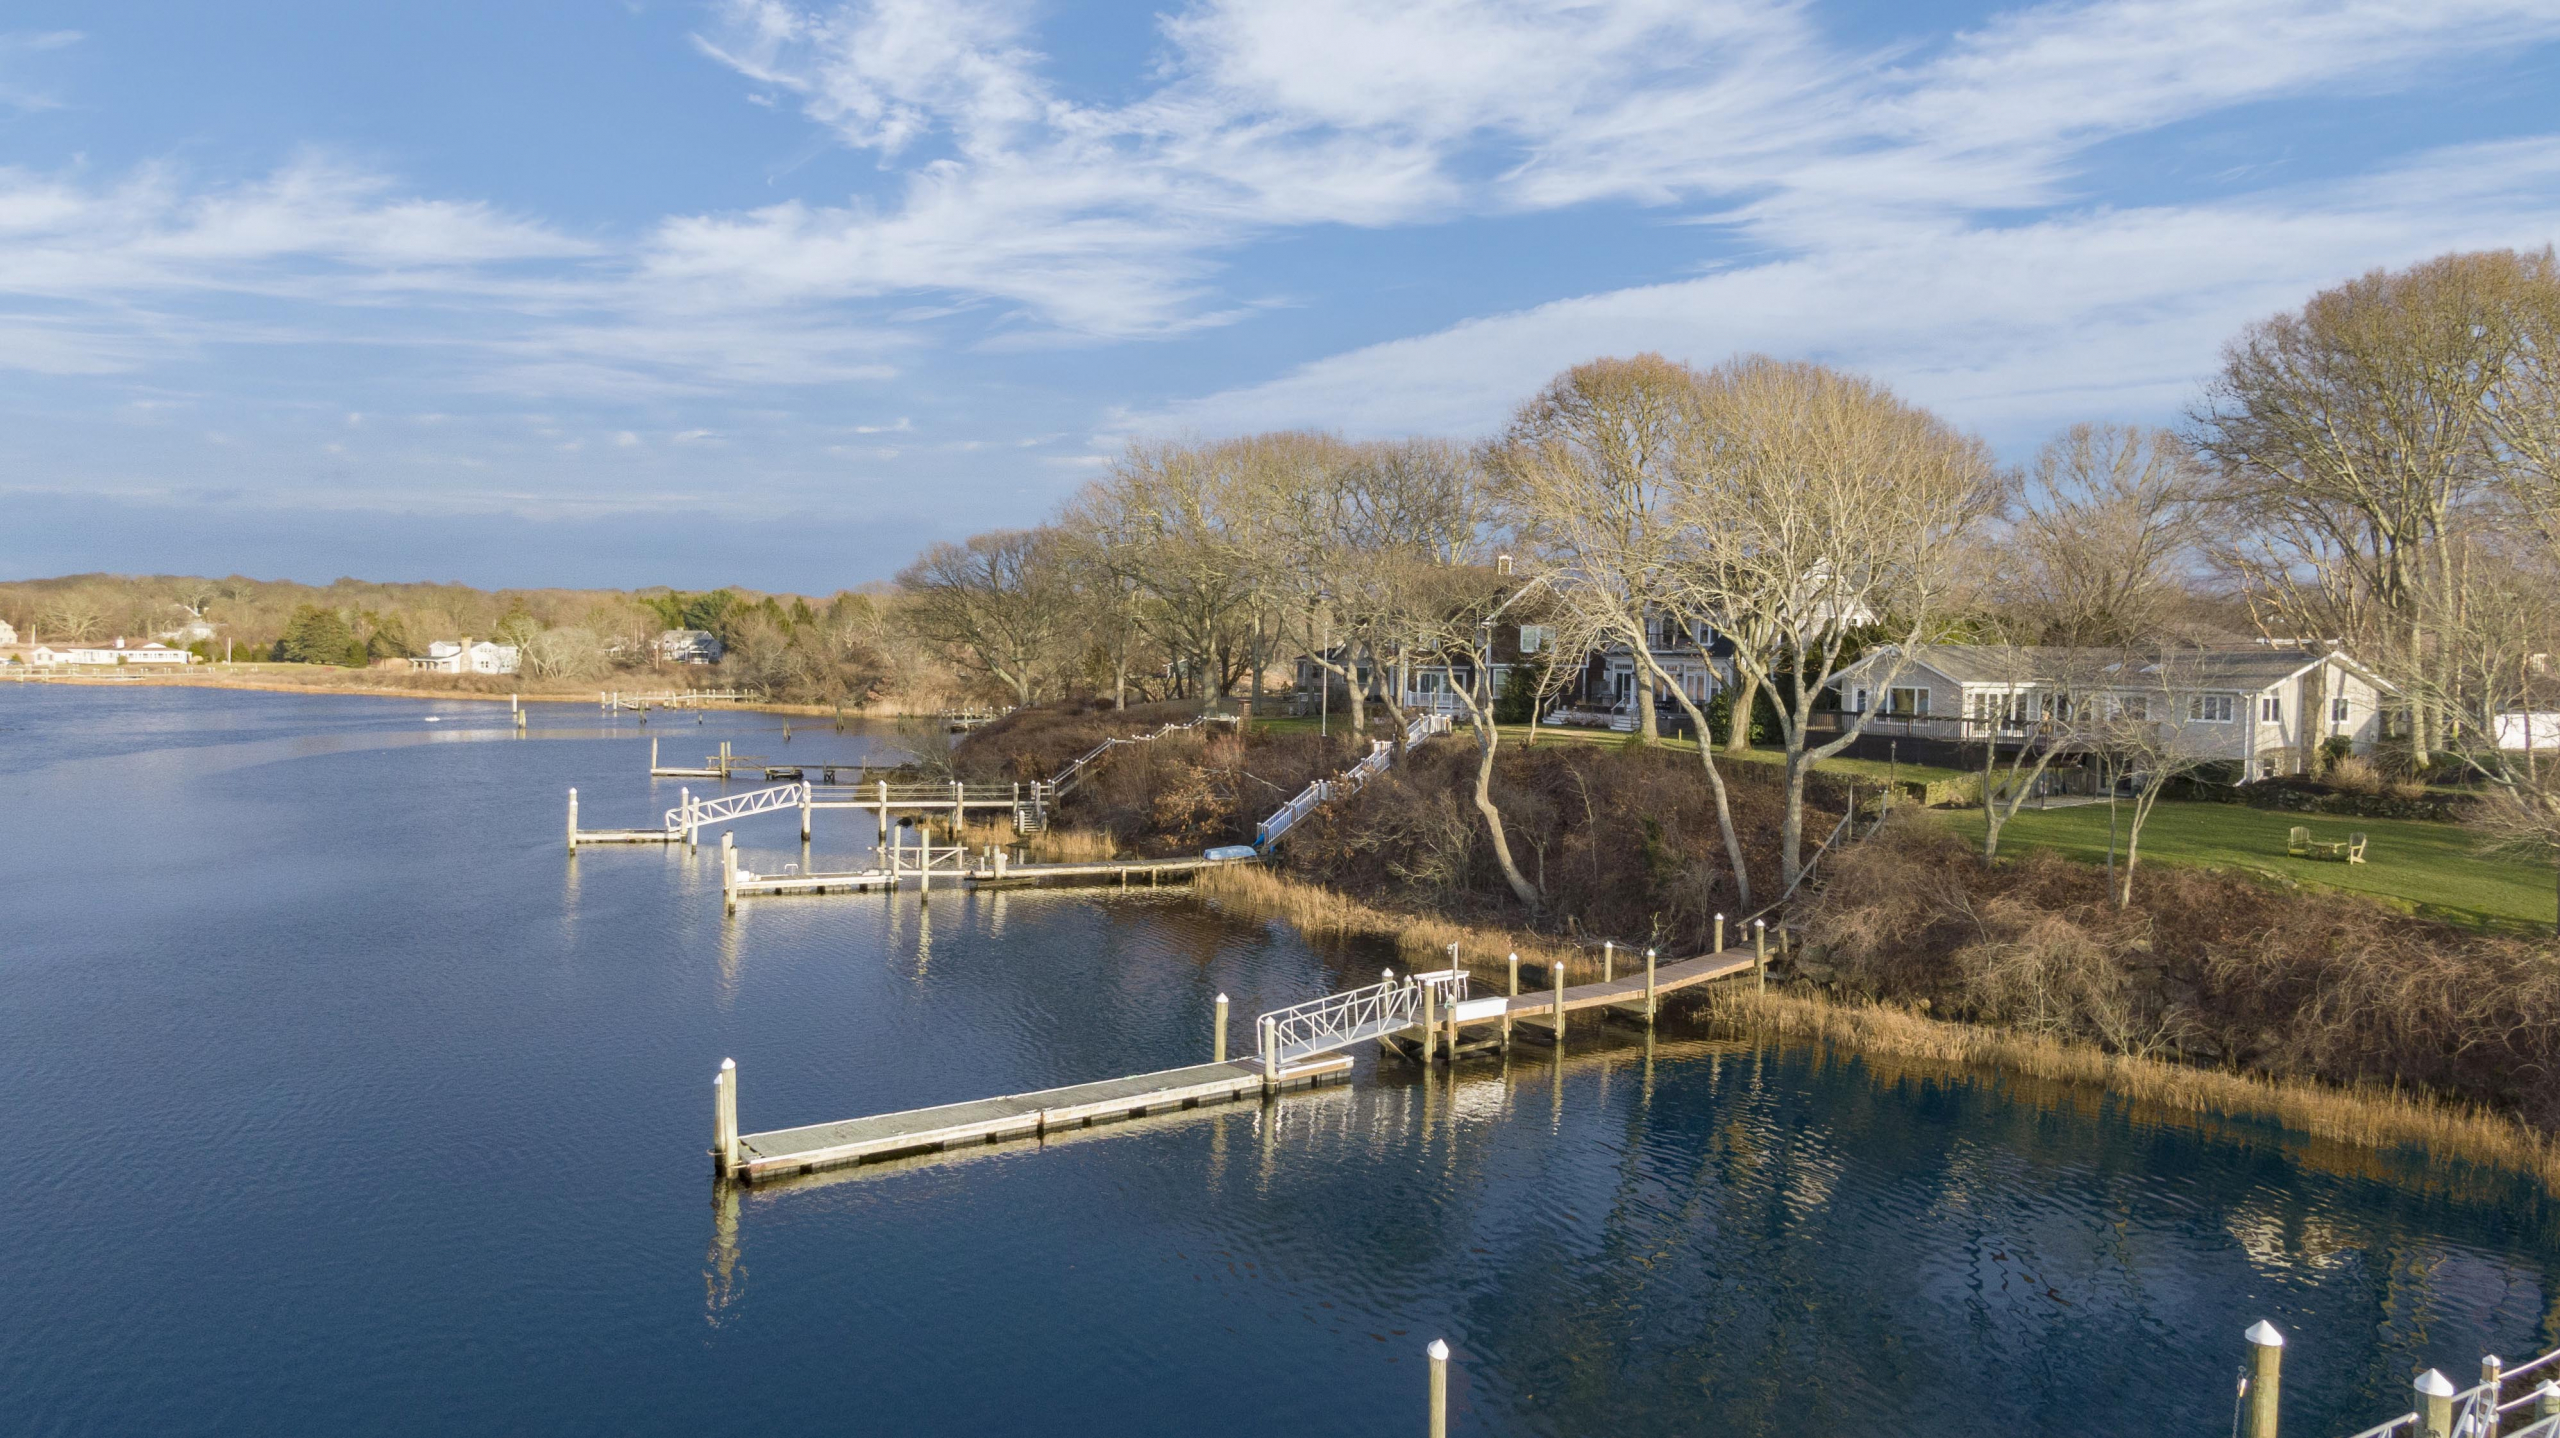 NARRAGANSETT WATERFRONT RANCH WITH DOCK SELLS FOR RECORD-BREAKING $1,425,000, MARKING THE 2ND HIGHEST SALE ON HARBOUR ISLAND EVER*